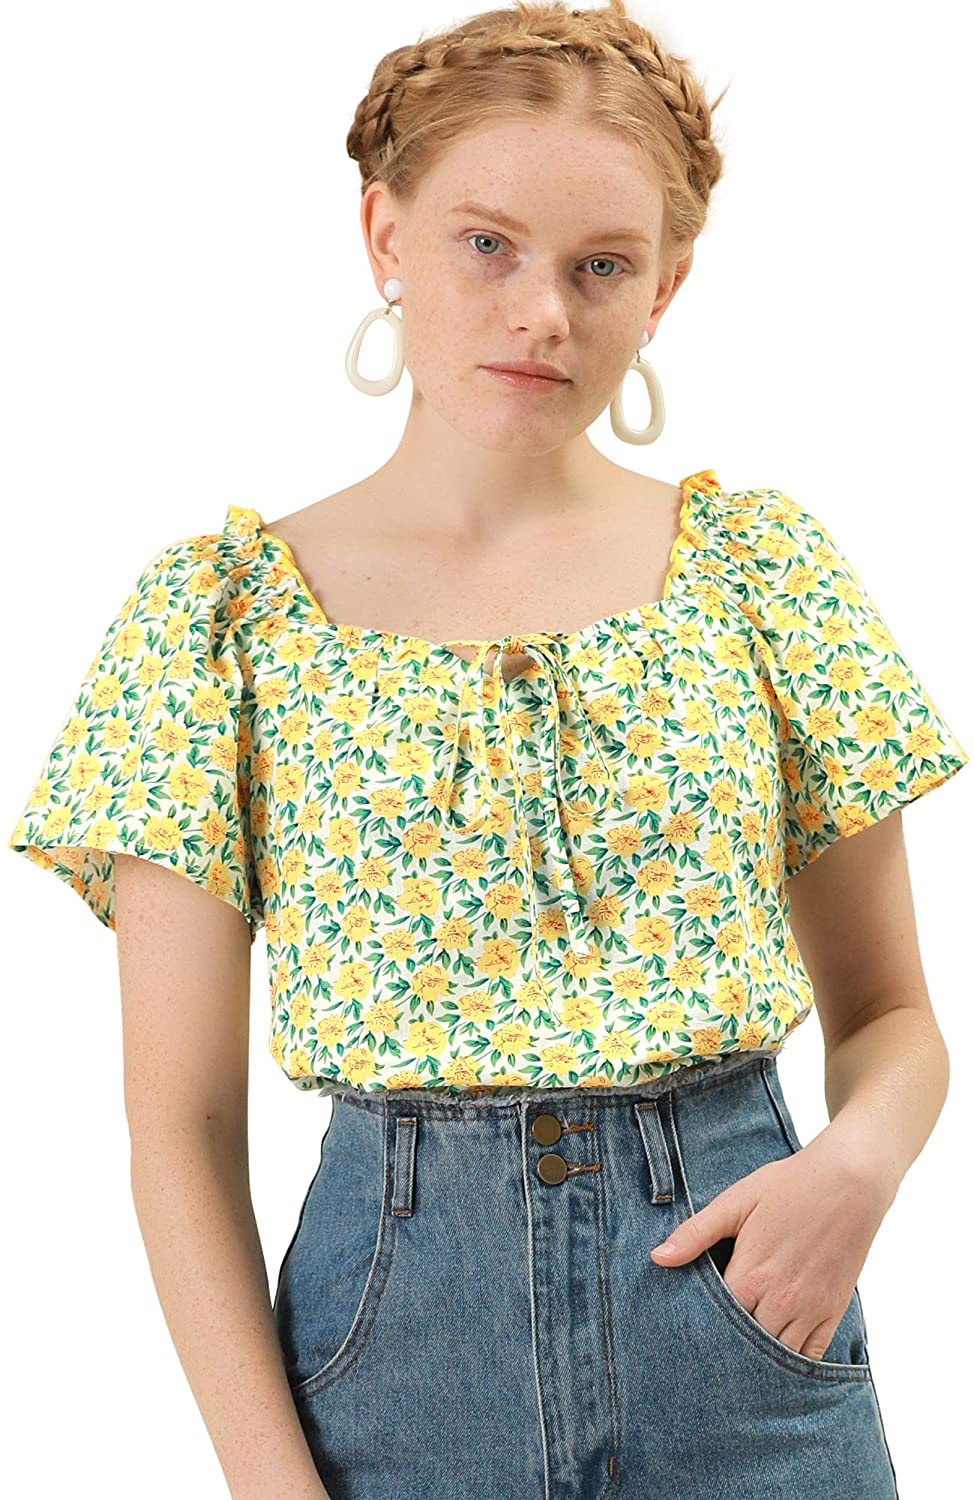 70s Outfits – 70s Style Ideas for Women Allegra K Womens Floral Sweetheart Neck Ruffle Short Sleeves Blouse Top $20.99 AT vintagedancer.com